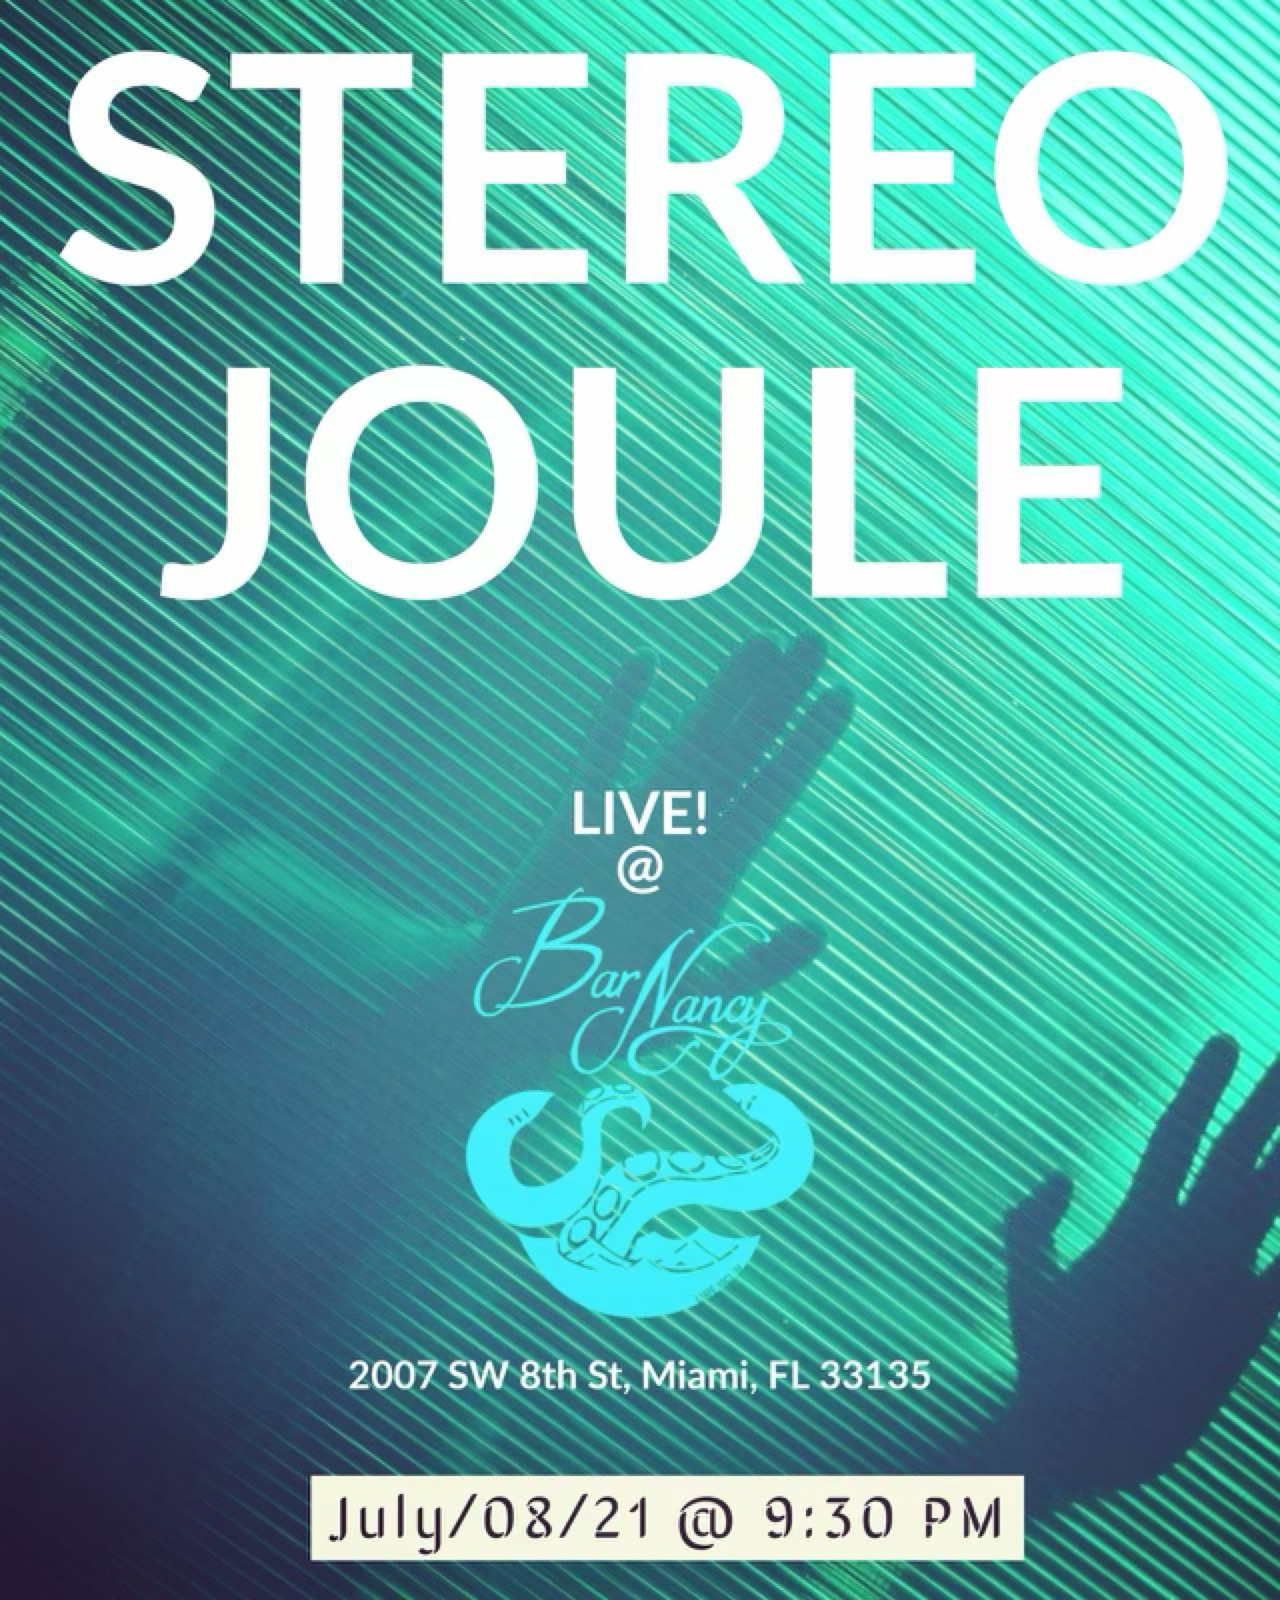 Stereo Joule at Bar Nancy July 8th @ 9:30PM